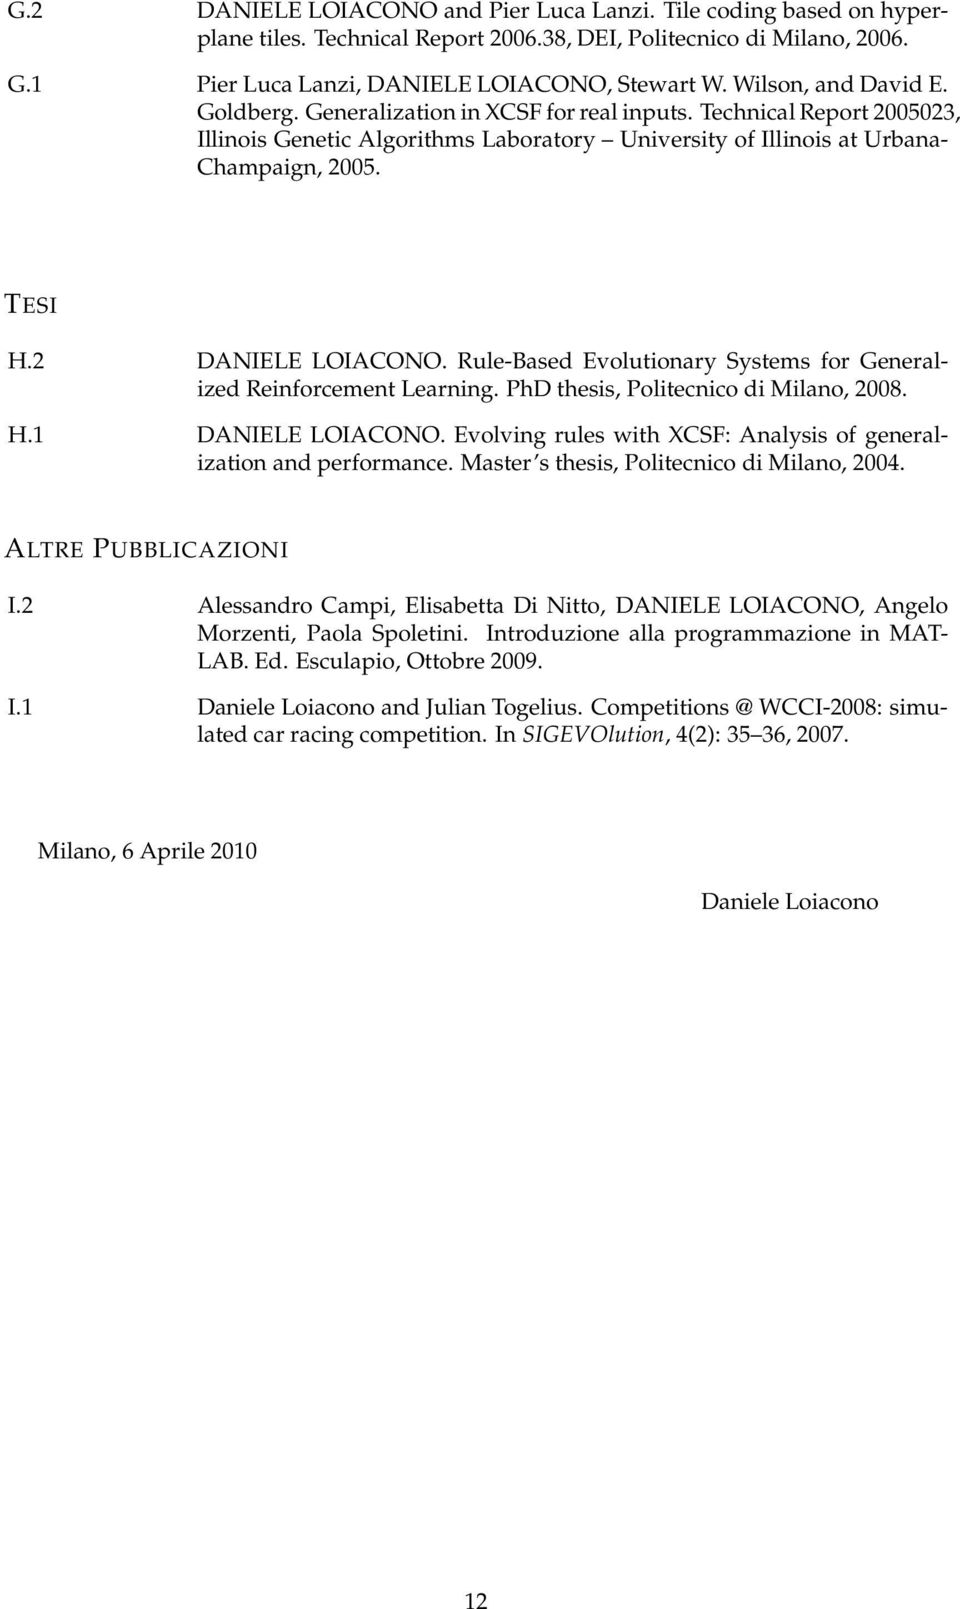 2 DANIELE LOIACONO. Rule-Based Evolutionary Systems for Generalized Reinforcement Learning. PhD thesis, Politecnico di Milano, 2008. H.1 DANIELE LOIACONO.